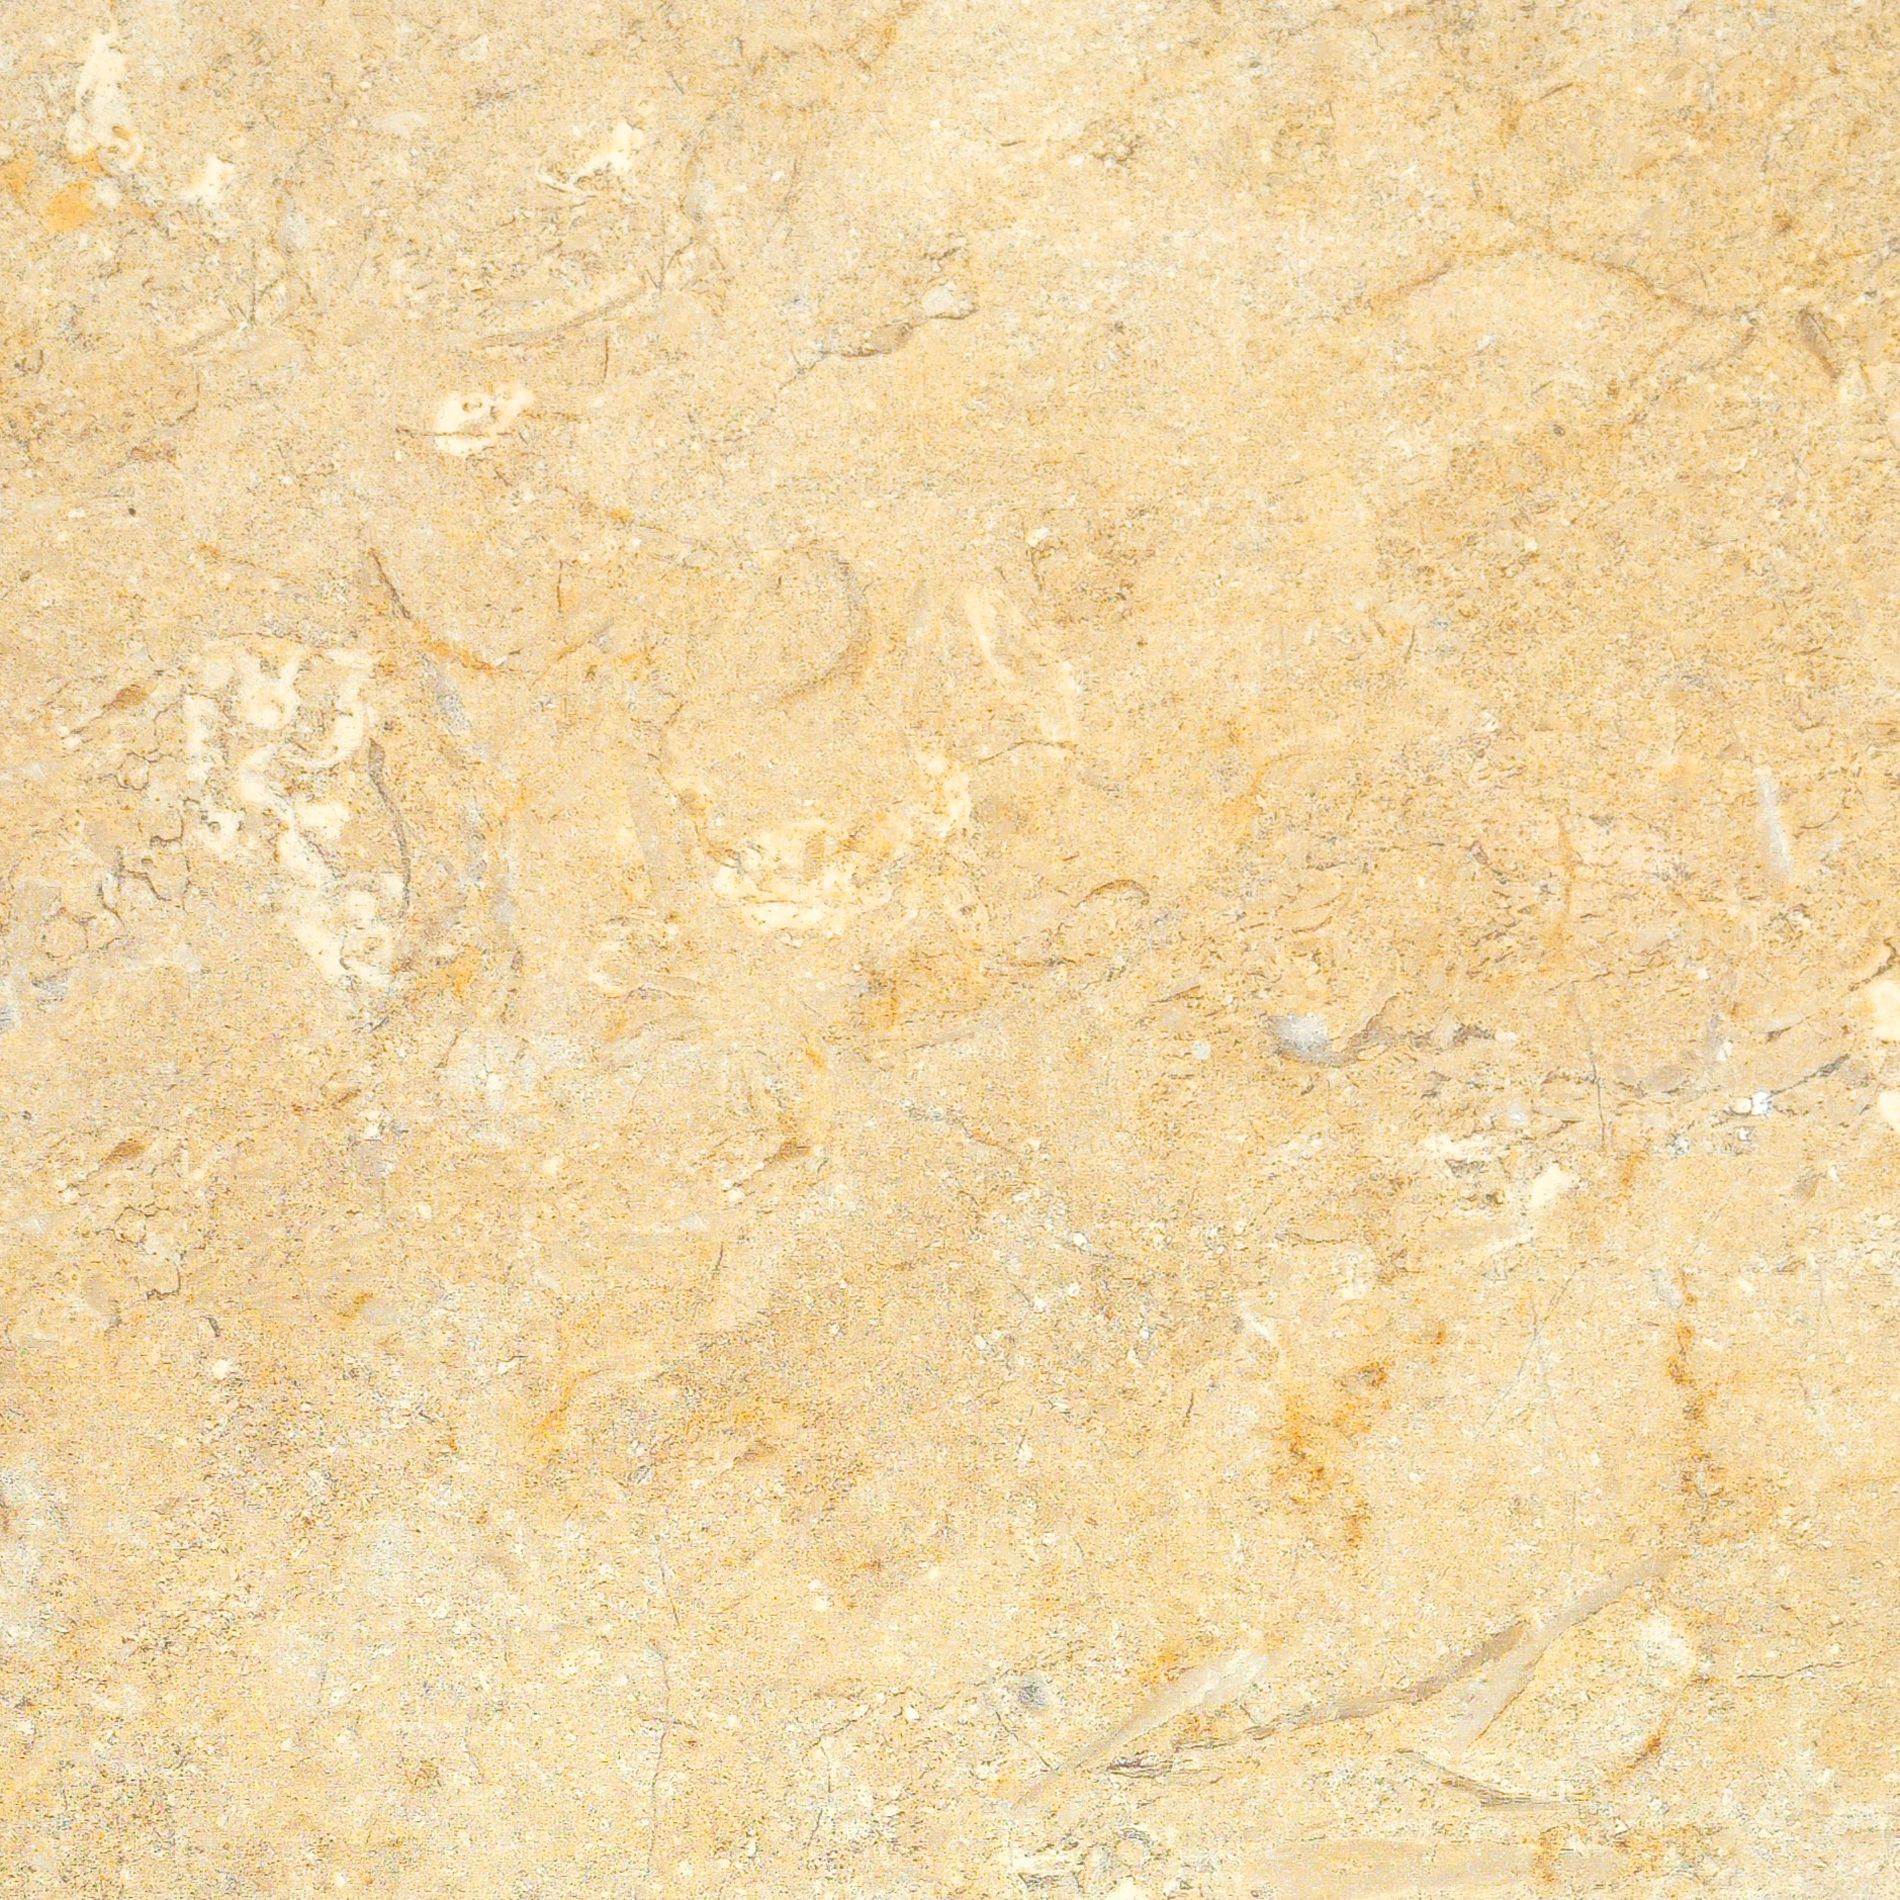 Bq Kitchen Flooring 38mm It Kitchens Travertine Beige Laminate Square Edge Kitchen